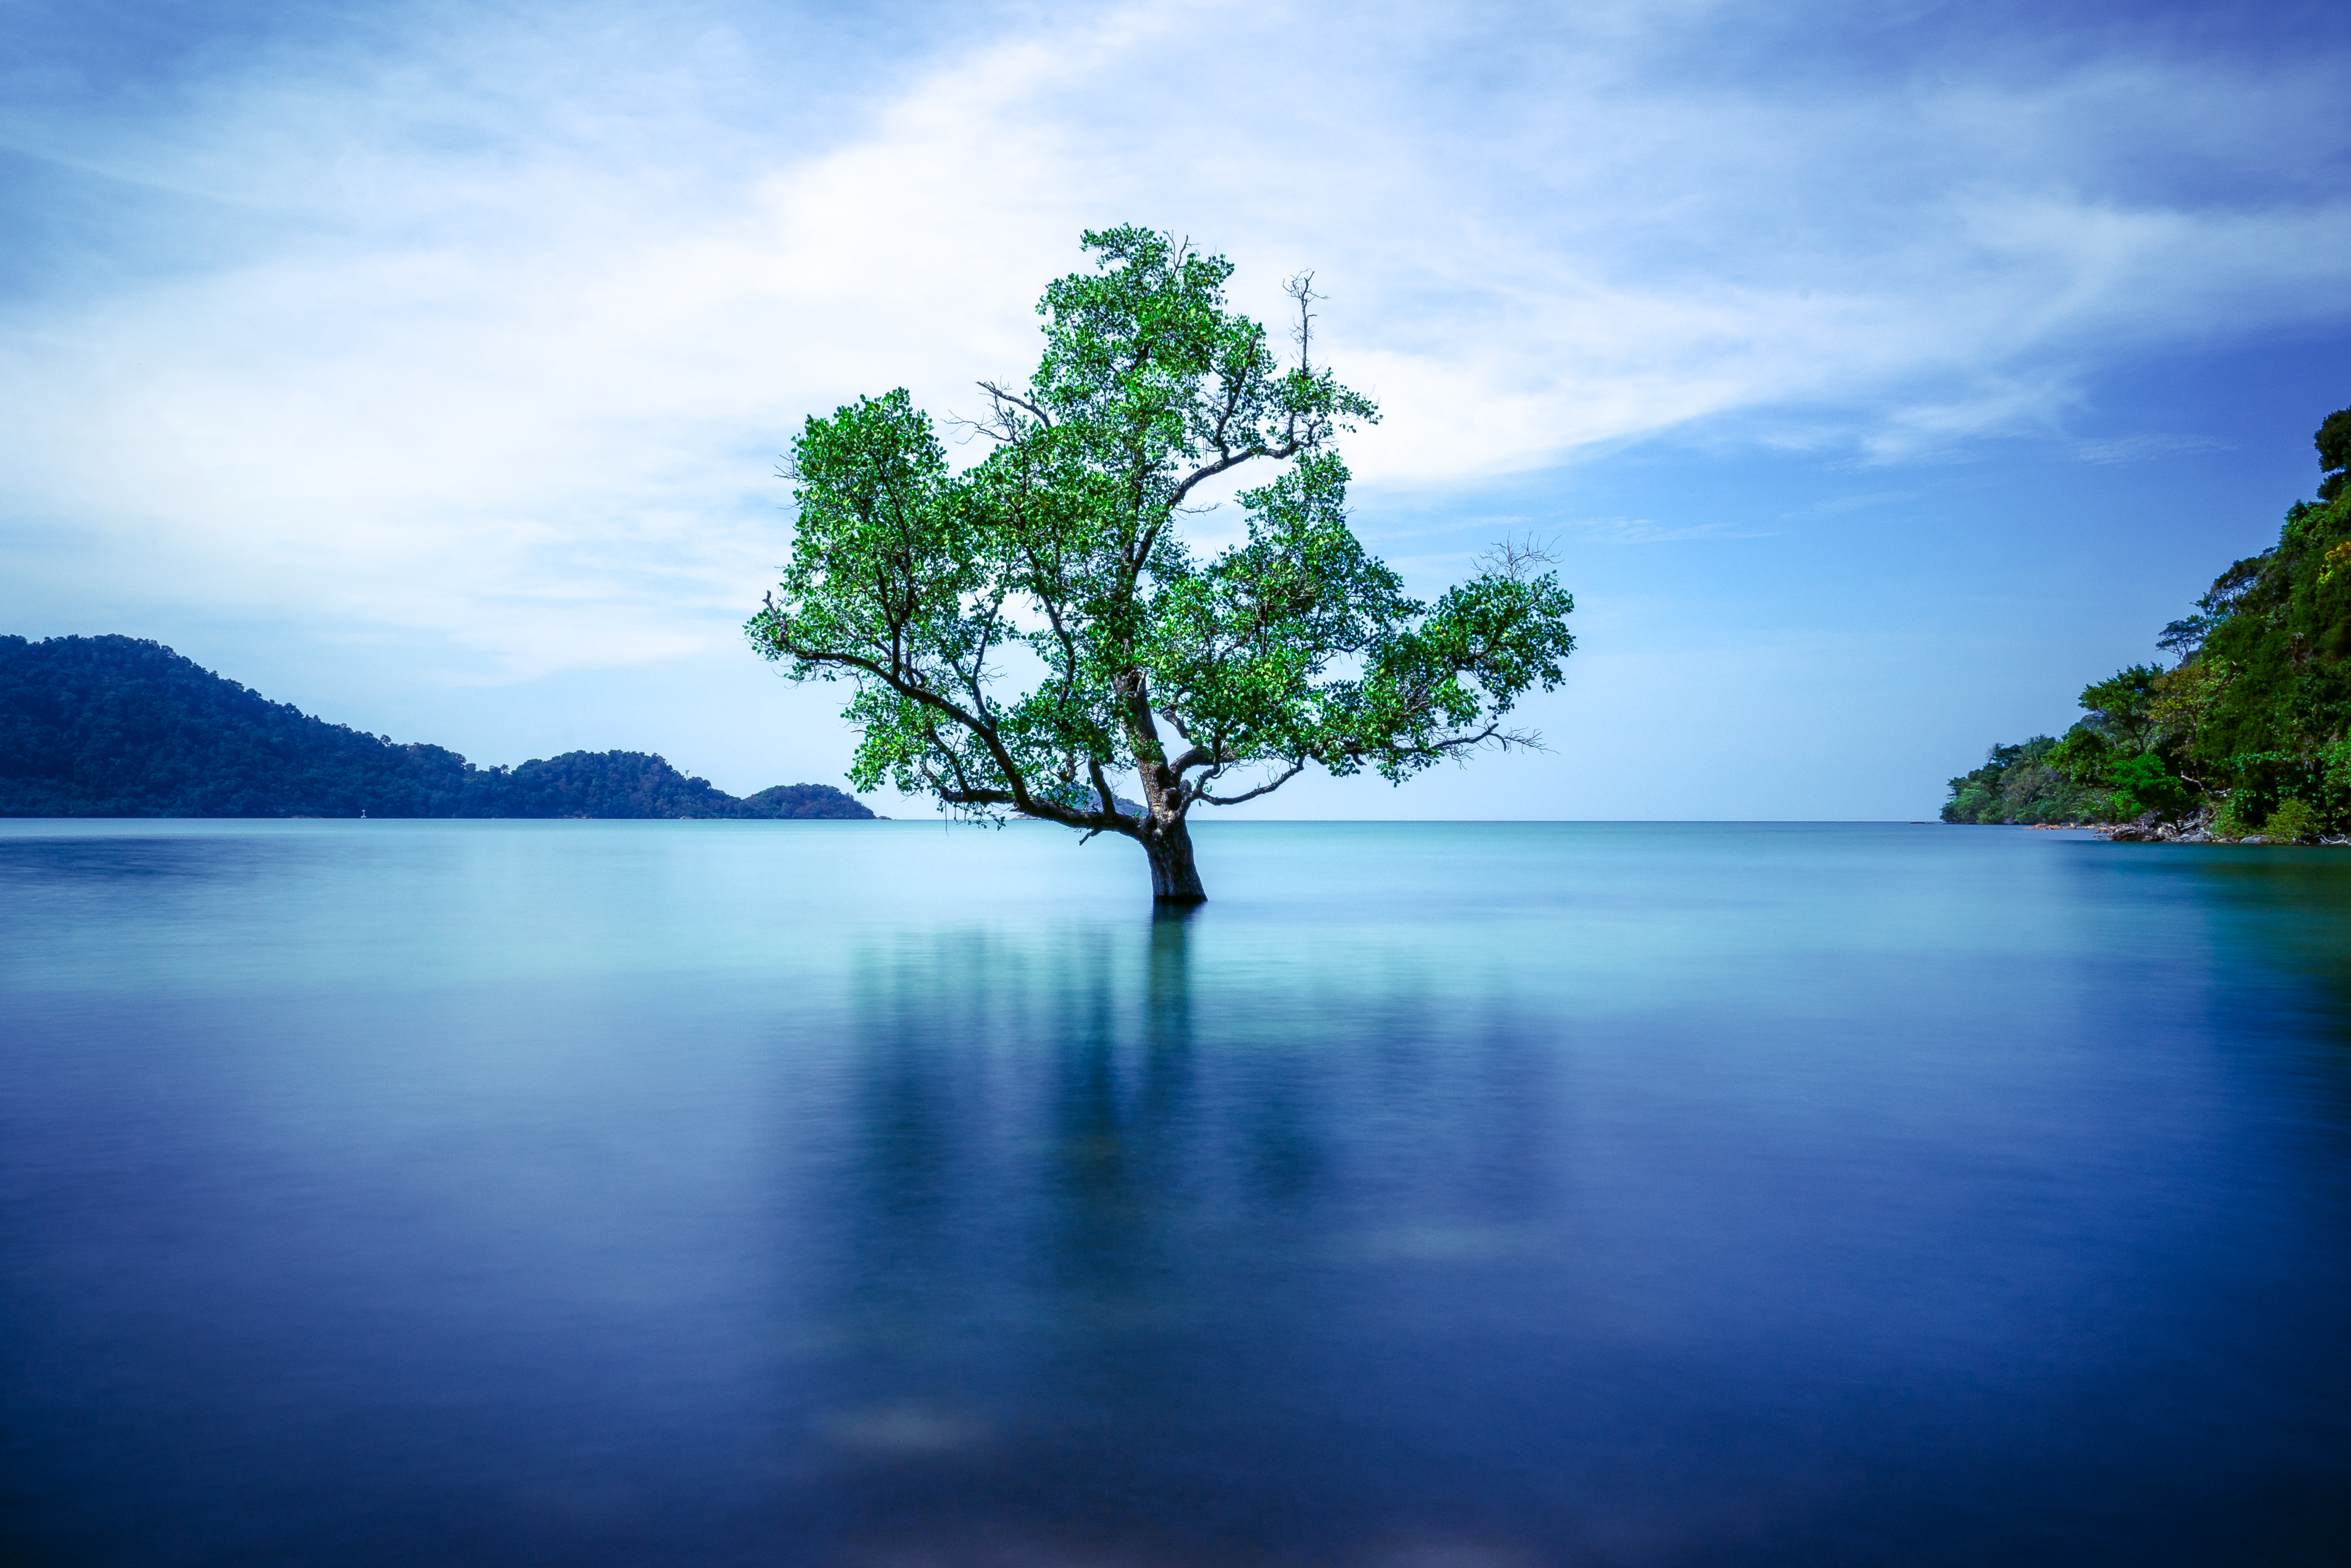 lone_tree_in_middle_of_still_lake-scopio-11b239e6-1875-40ee-8690-0b68916951be.jpg